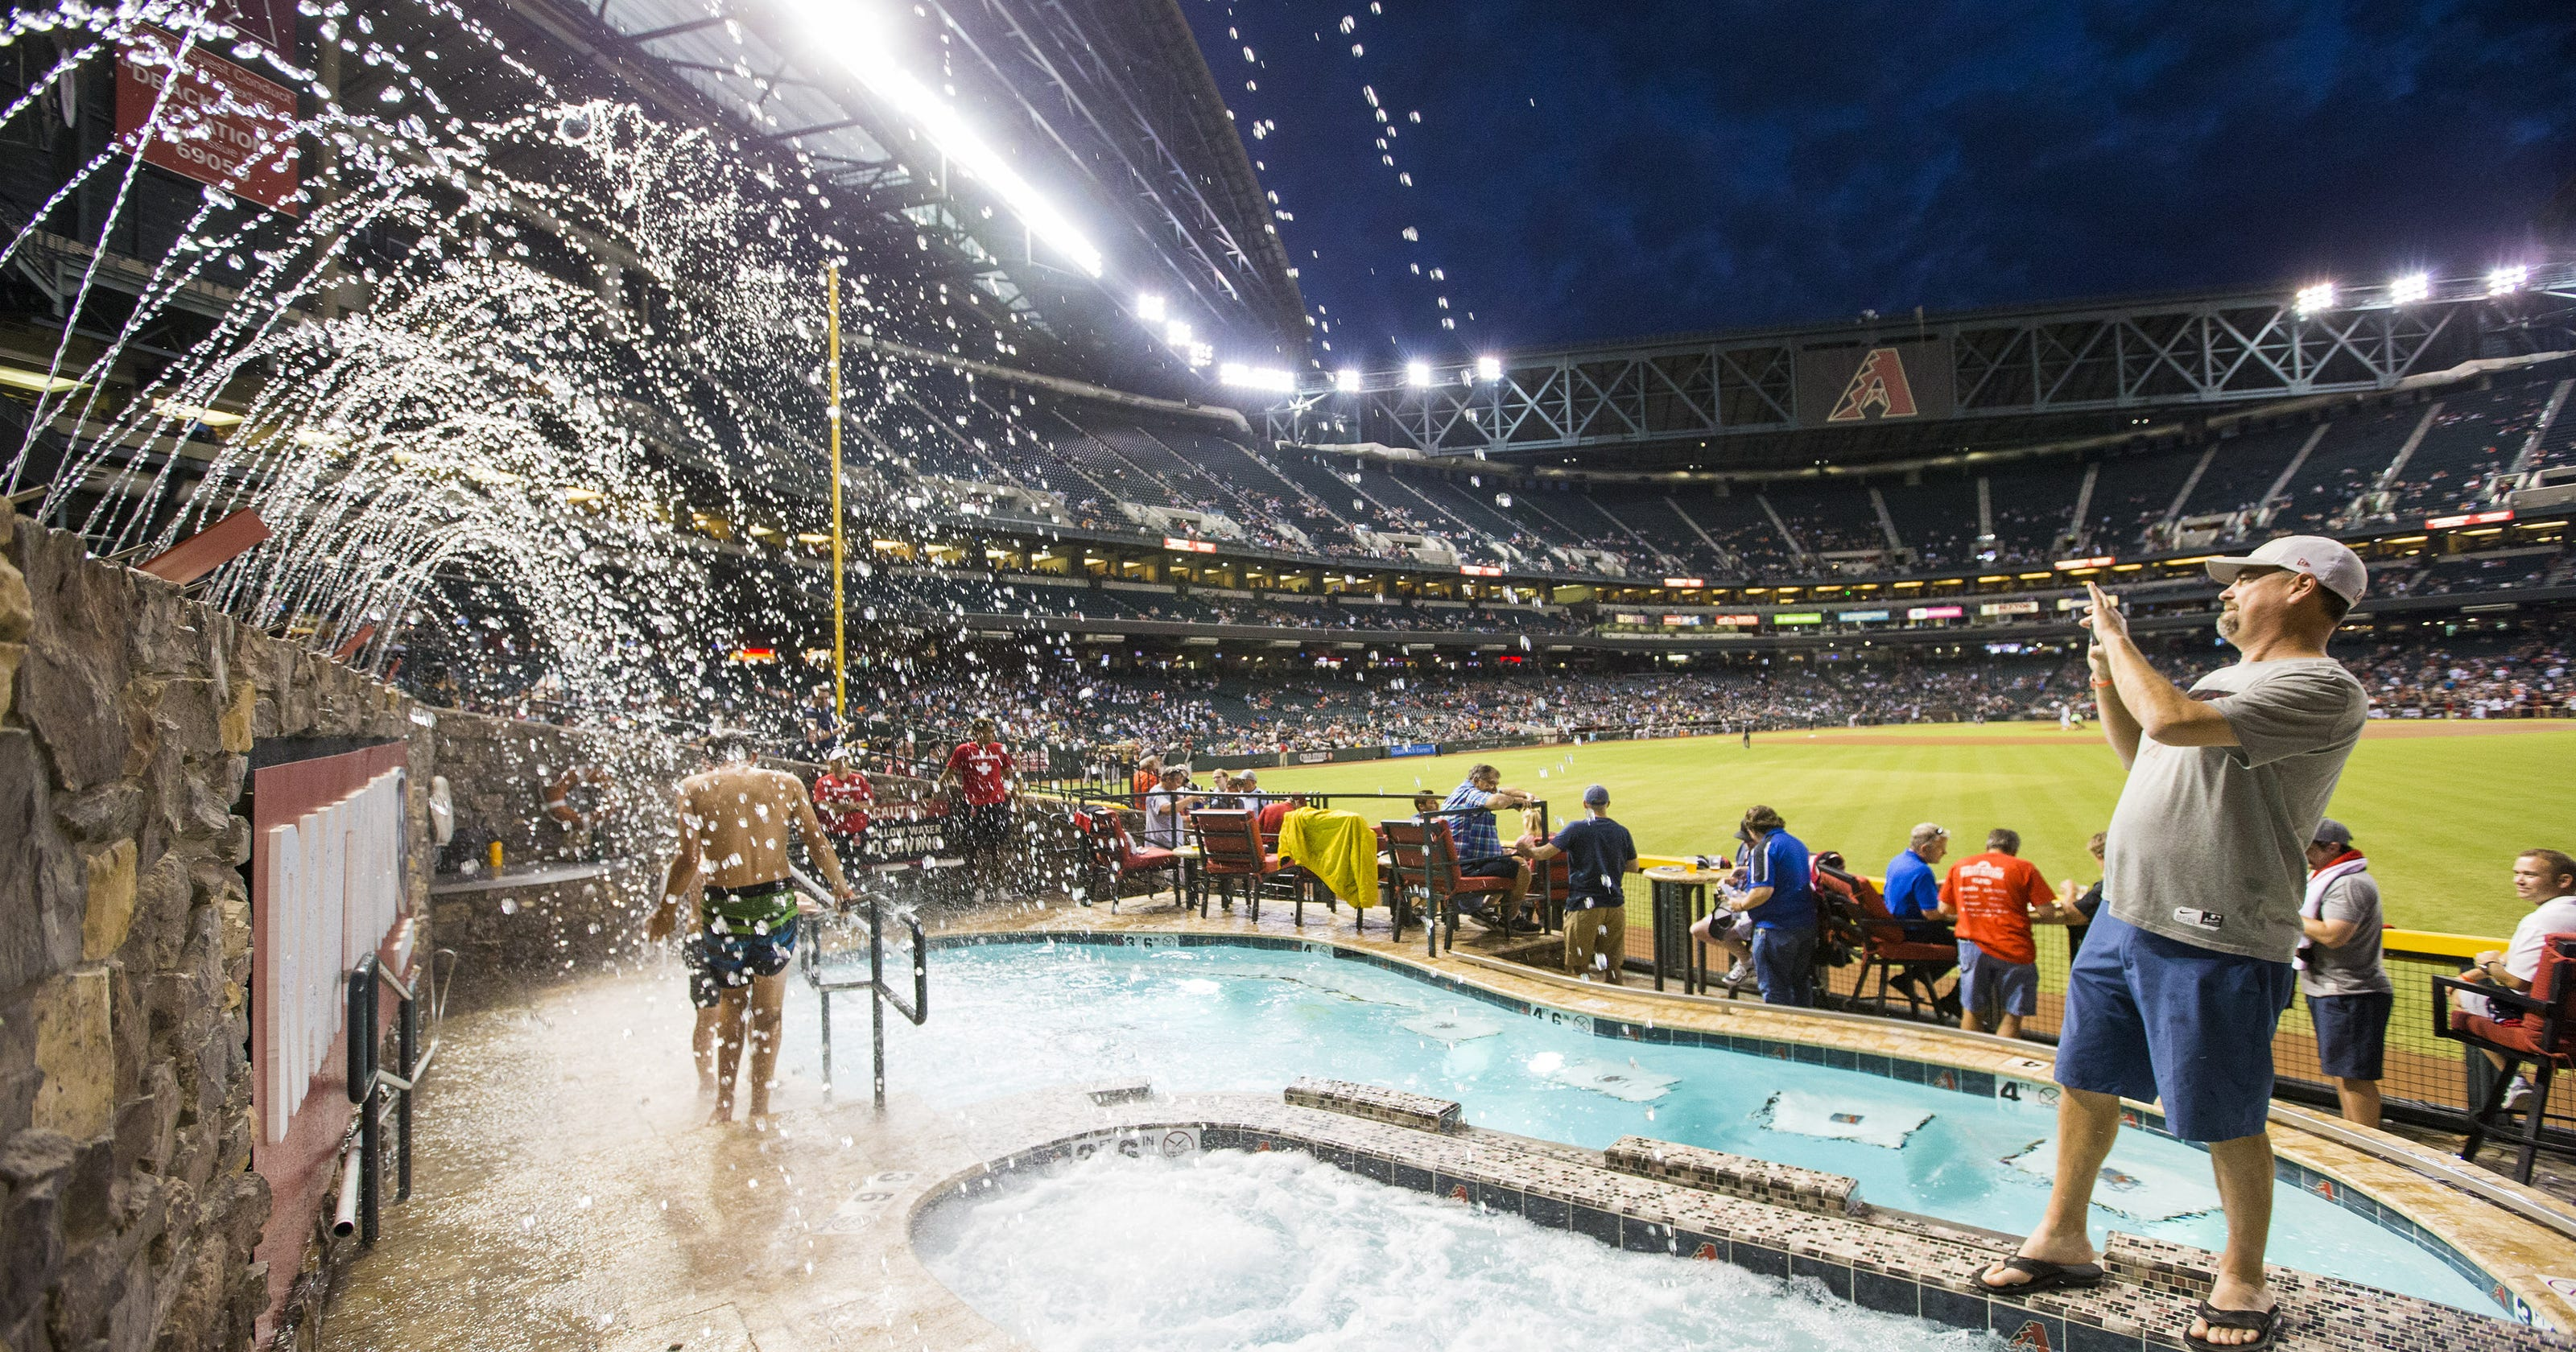 Chase Field Pool Started As A Joke But Arizona D Backs